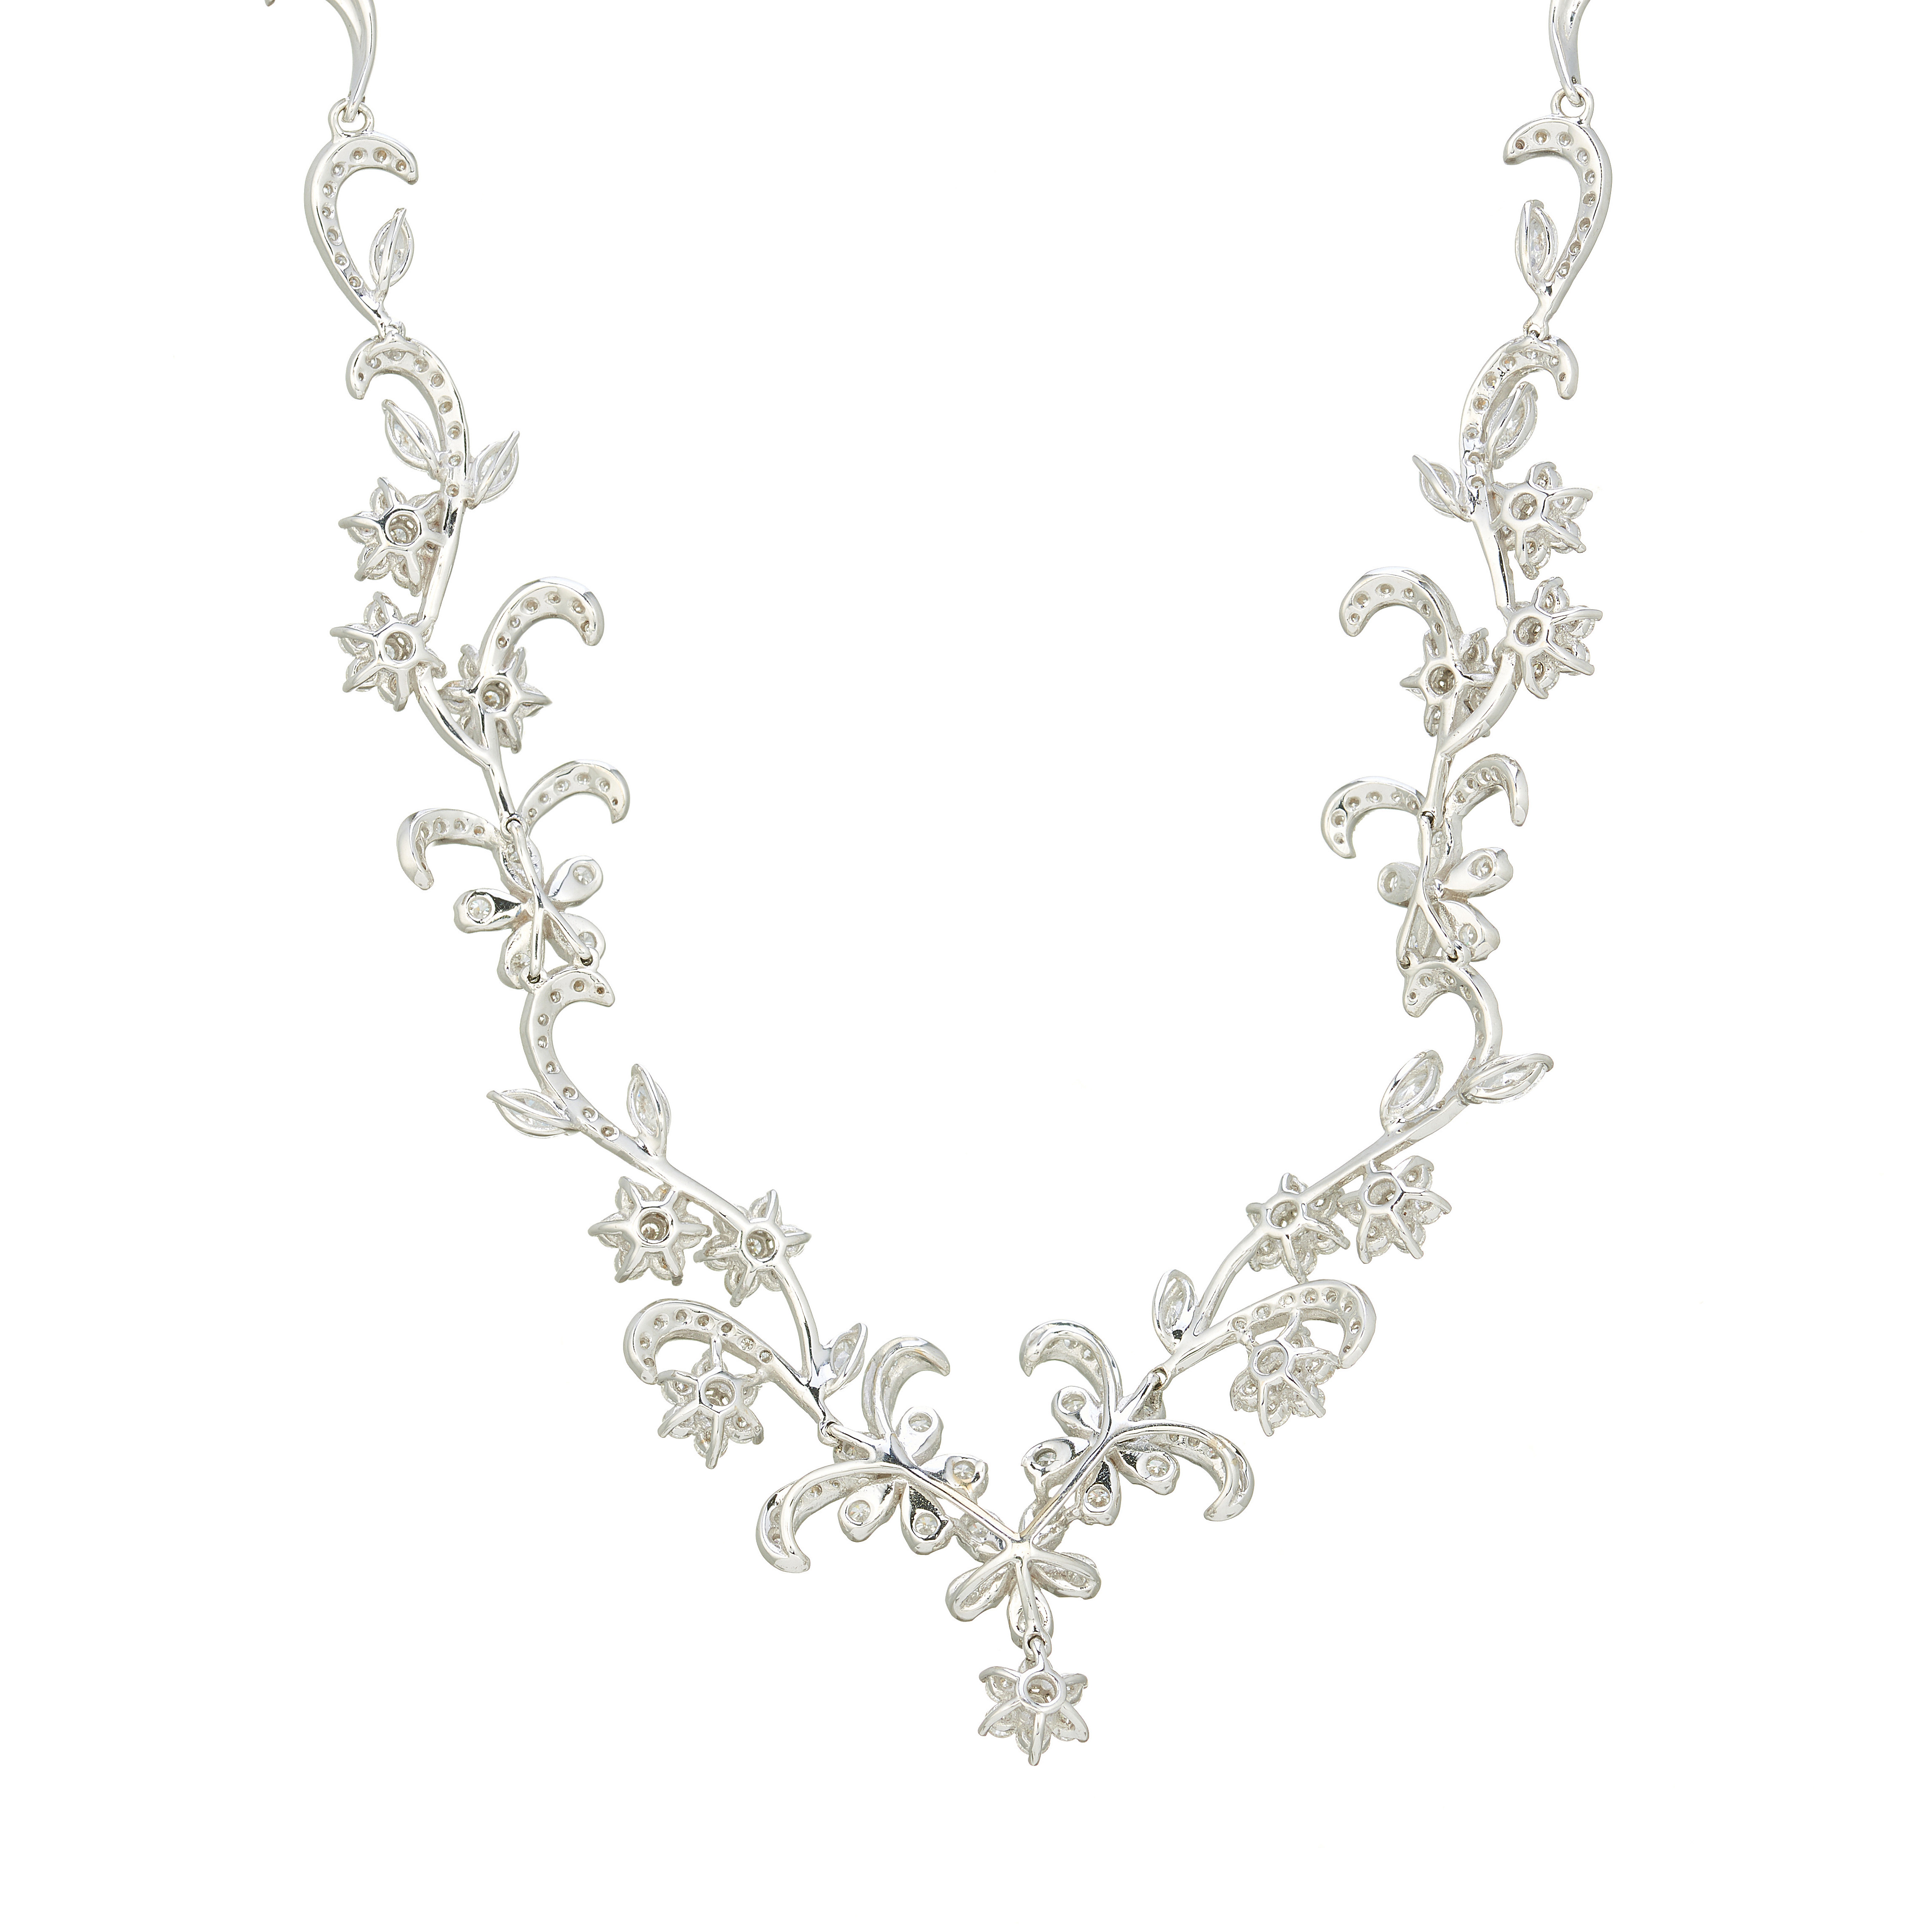 An 18ct gold diamond floral and foliate necklace - Image 2 of 3